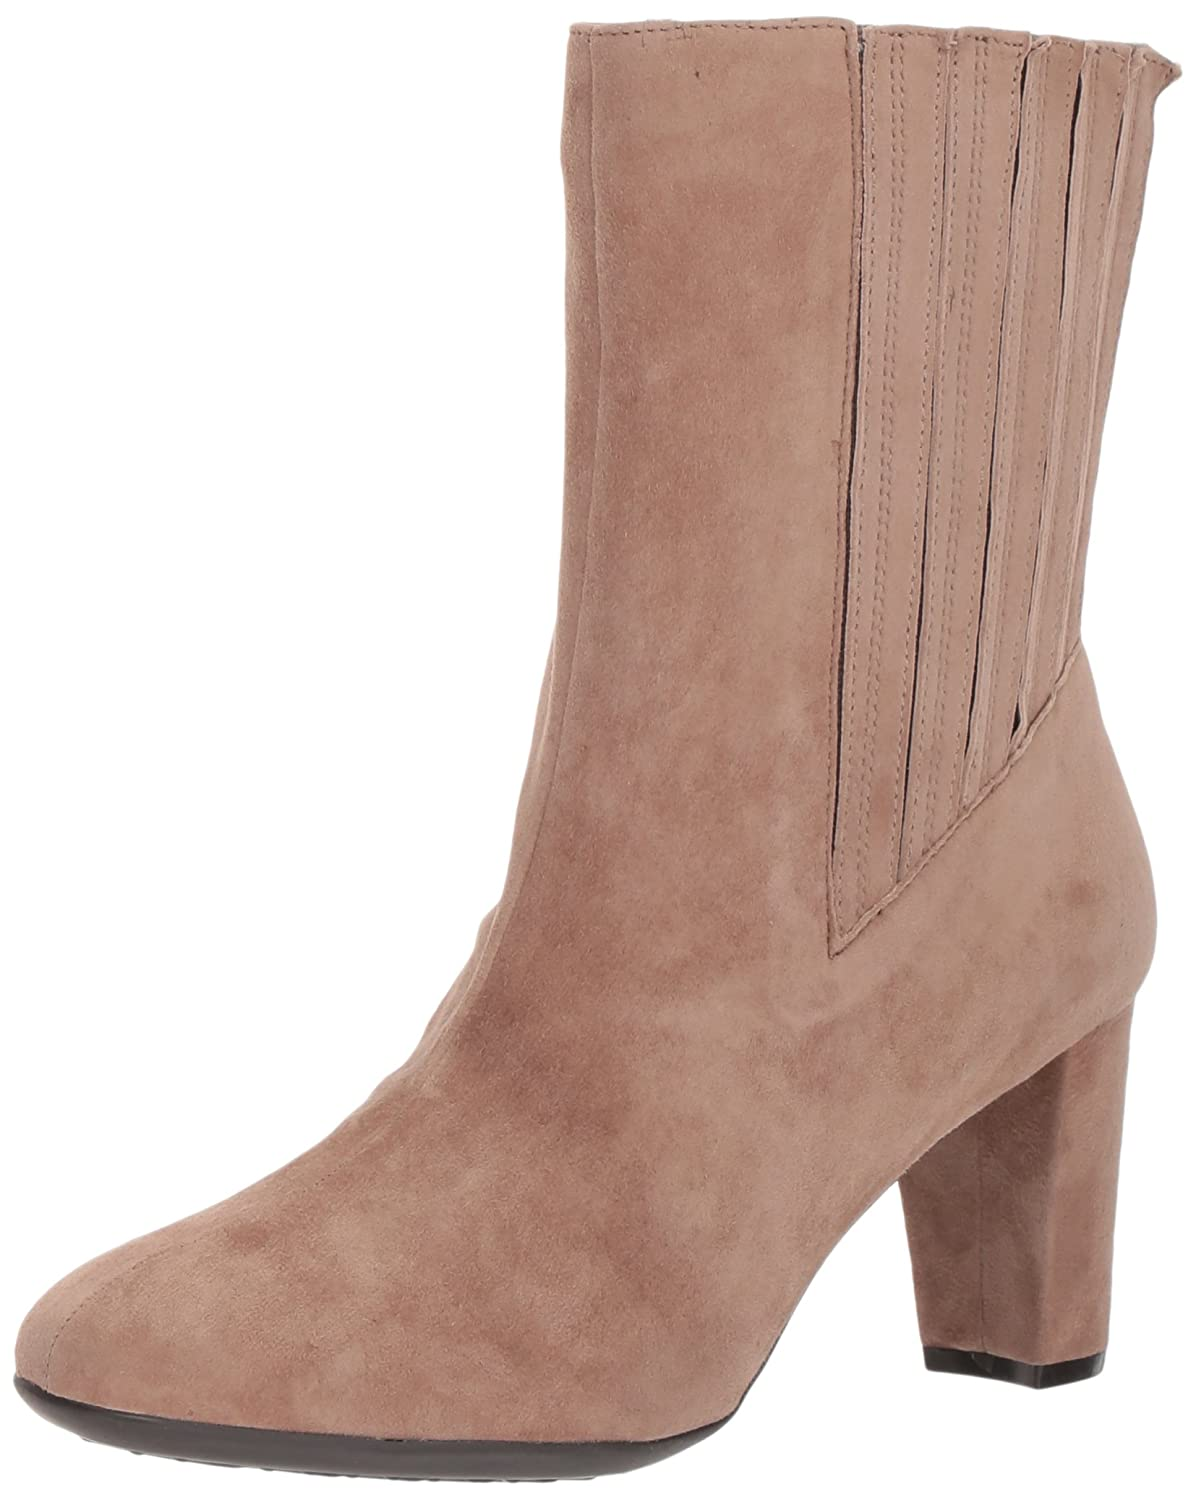 Aerosoles Women's Fifth Ave Mid Calf Boot B06Y5PQZ6Q 11 B(M) US|Taupe Suede